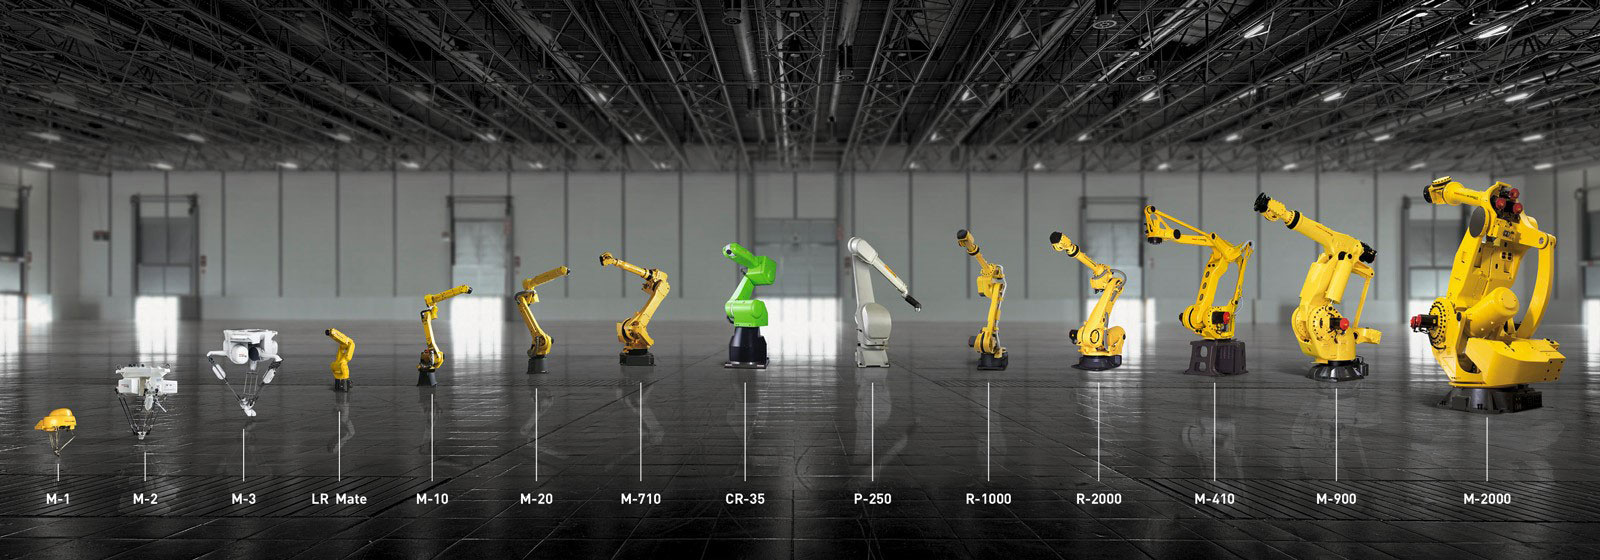 Fanuc-collection